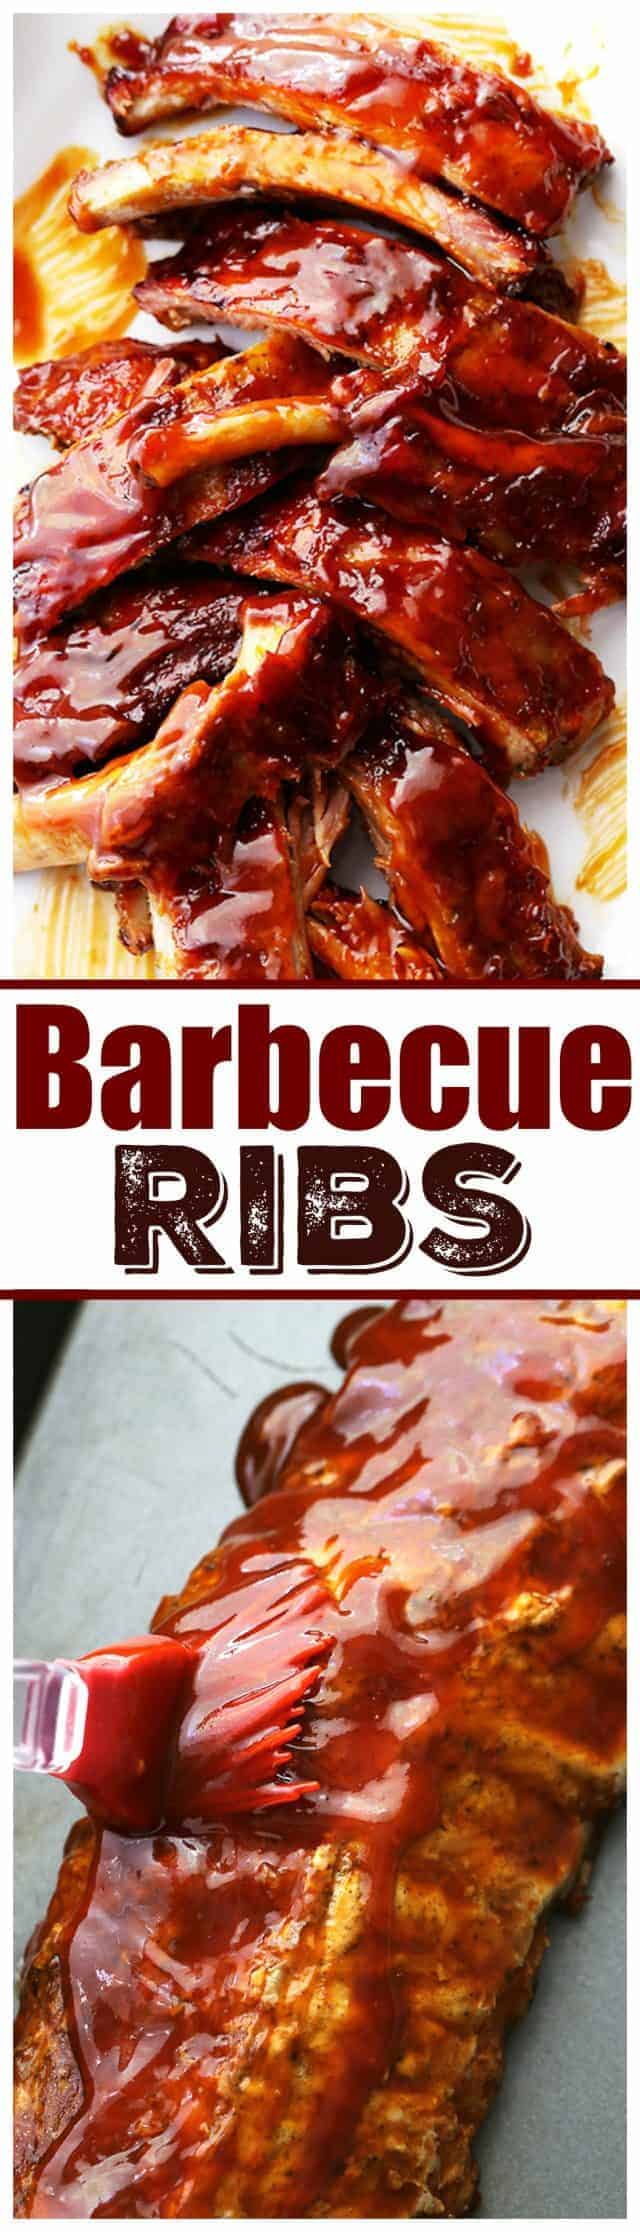 A Collage of Two Images of Barbecue Ribs with a Recipe Label Between Them